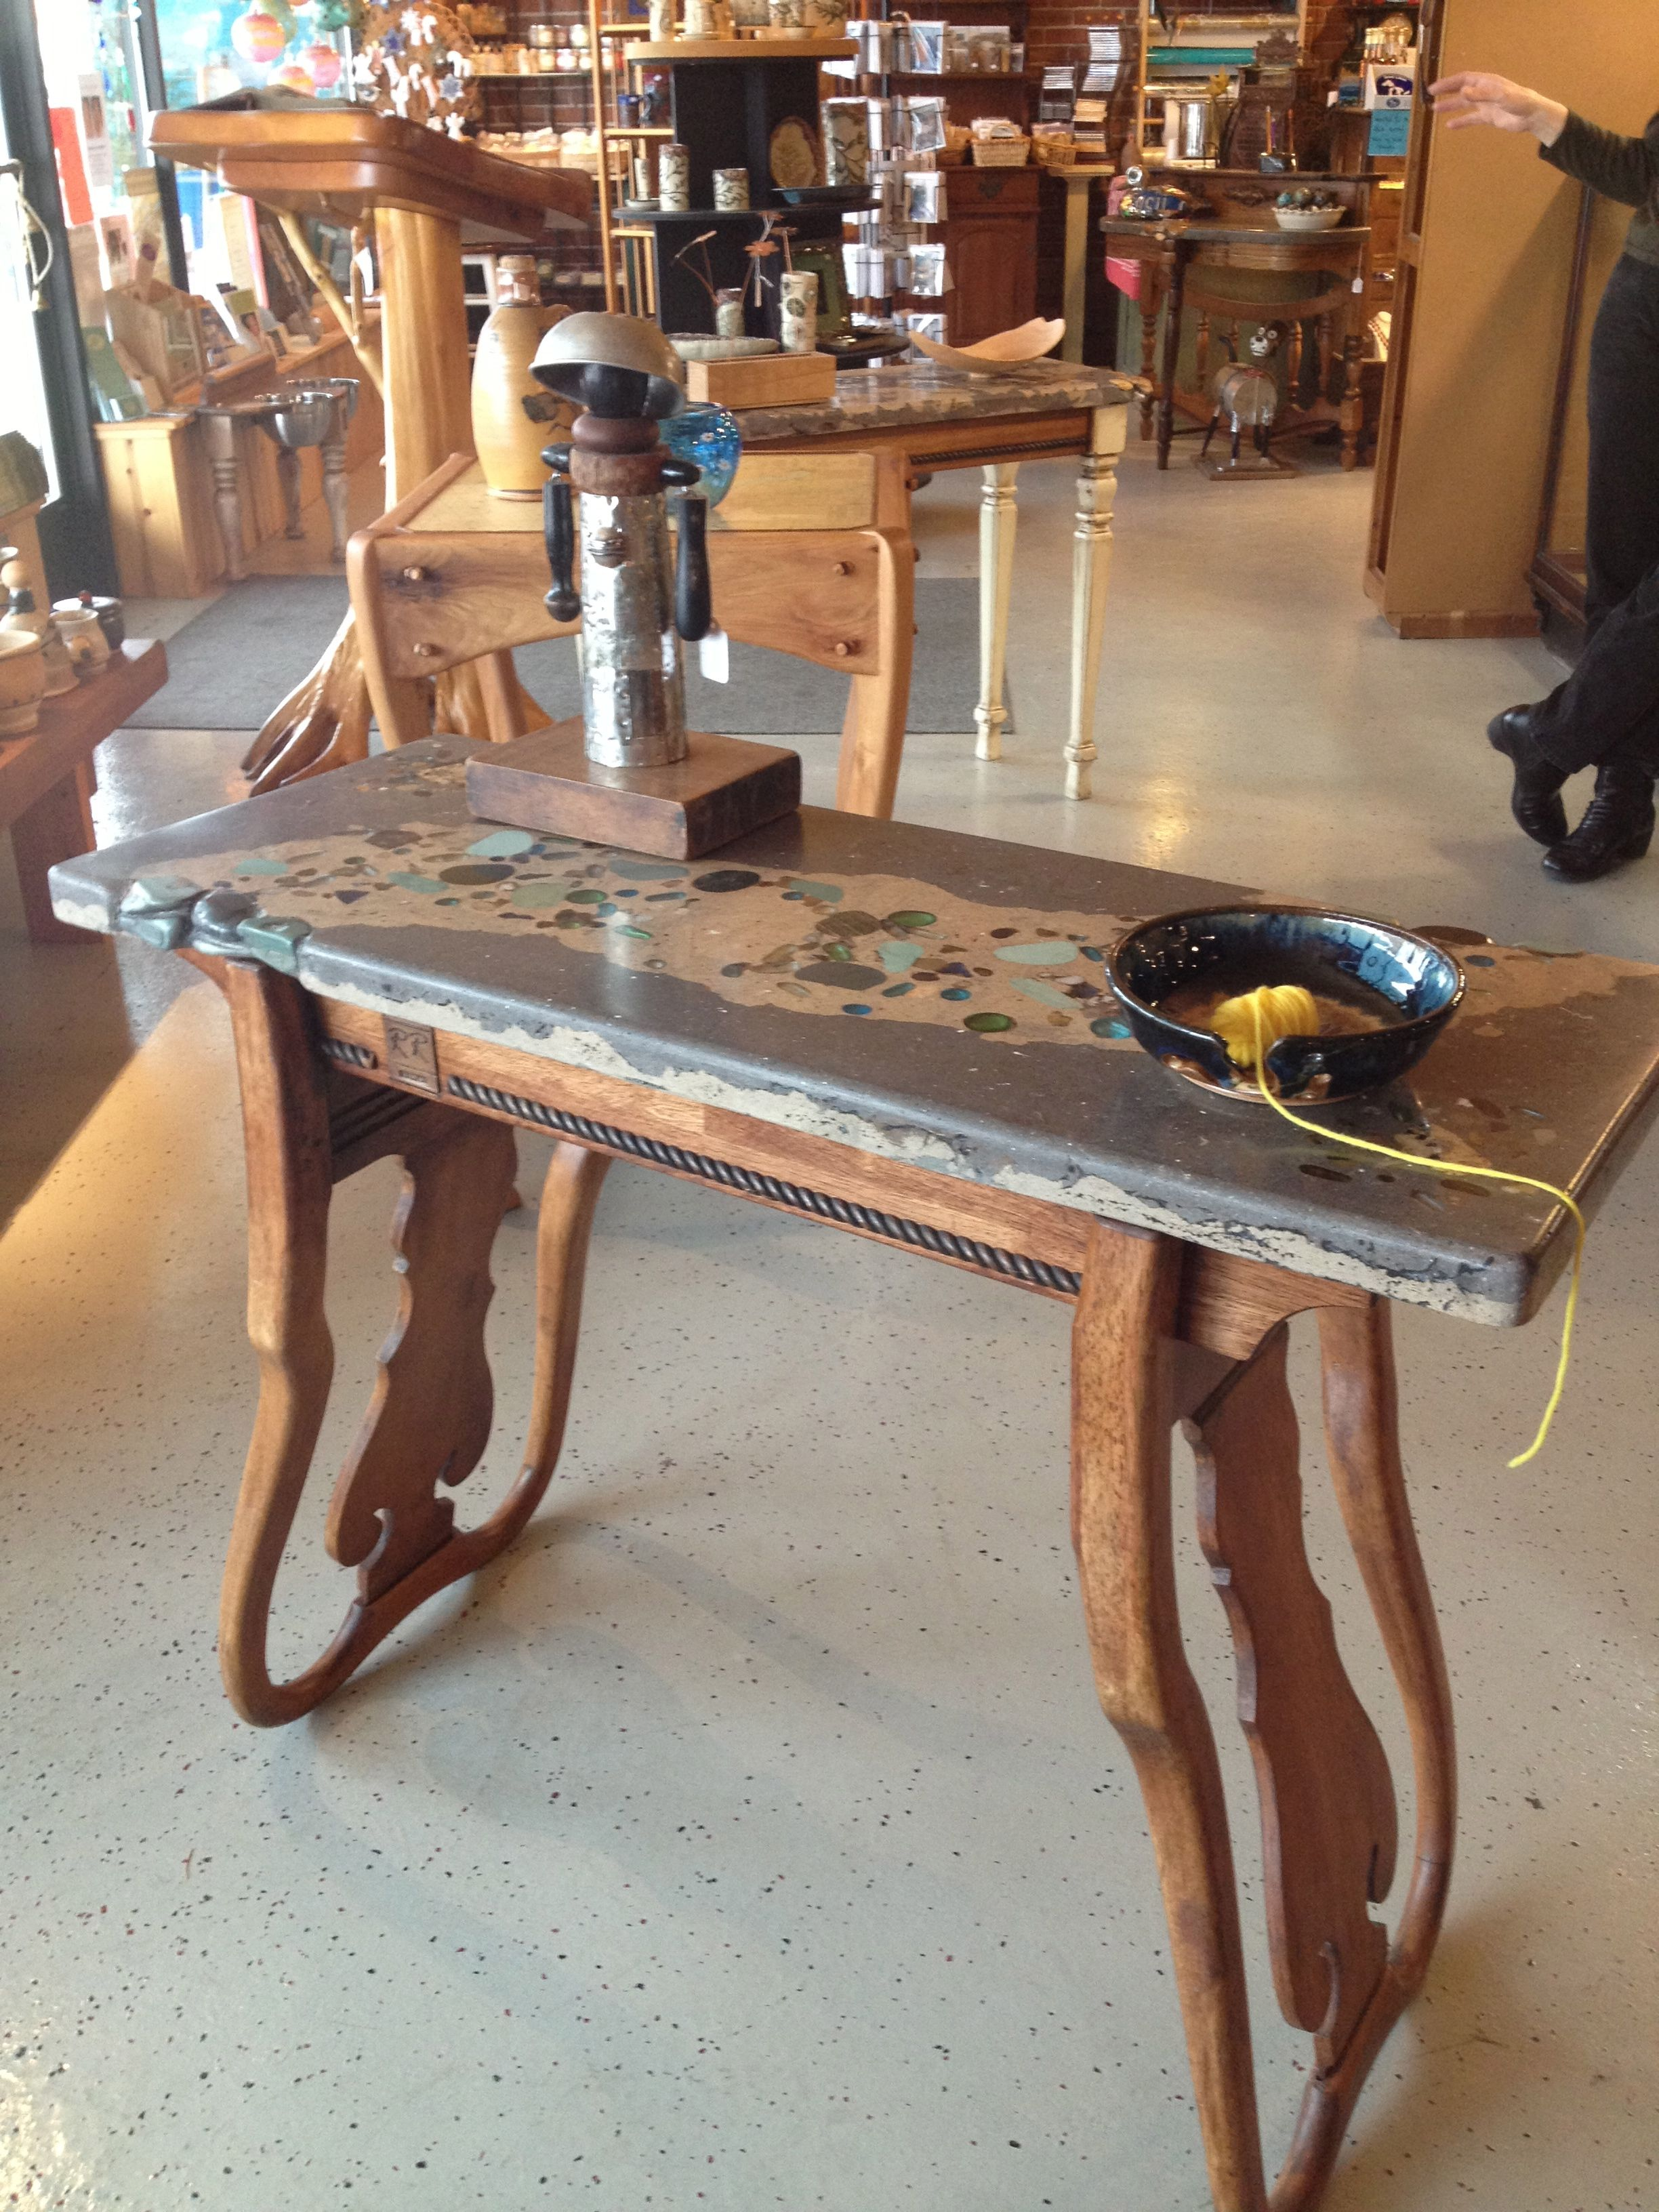 This Cool Table Is In An Art Gallery In Boyne City Mi - Diy Möbel Vintage